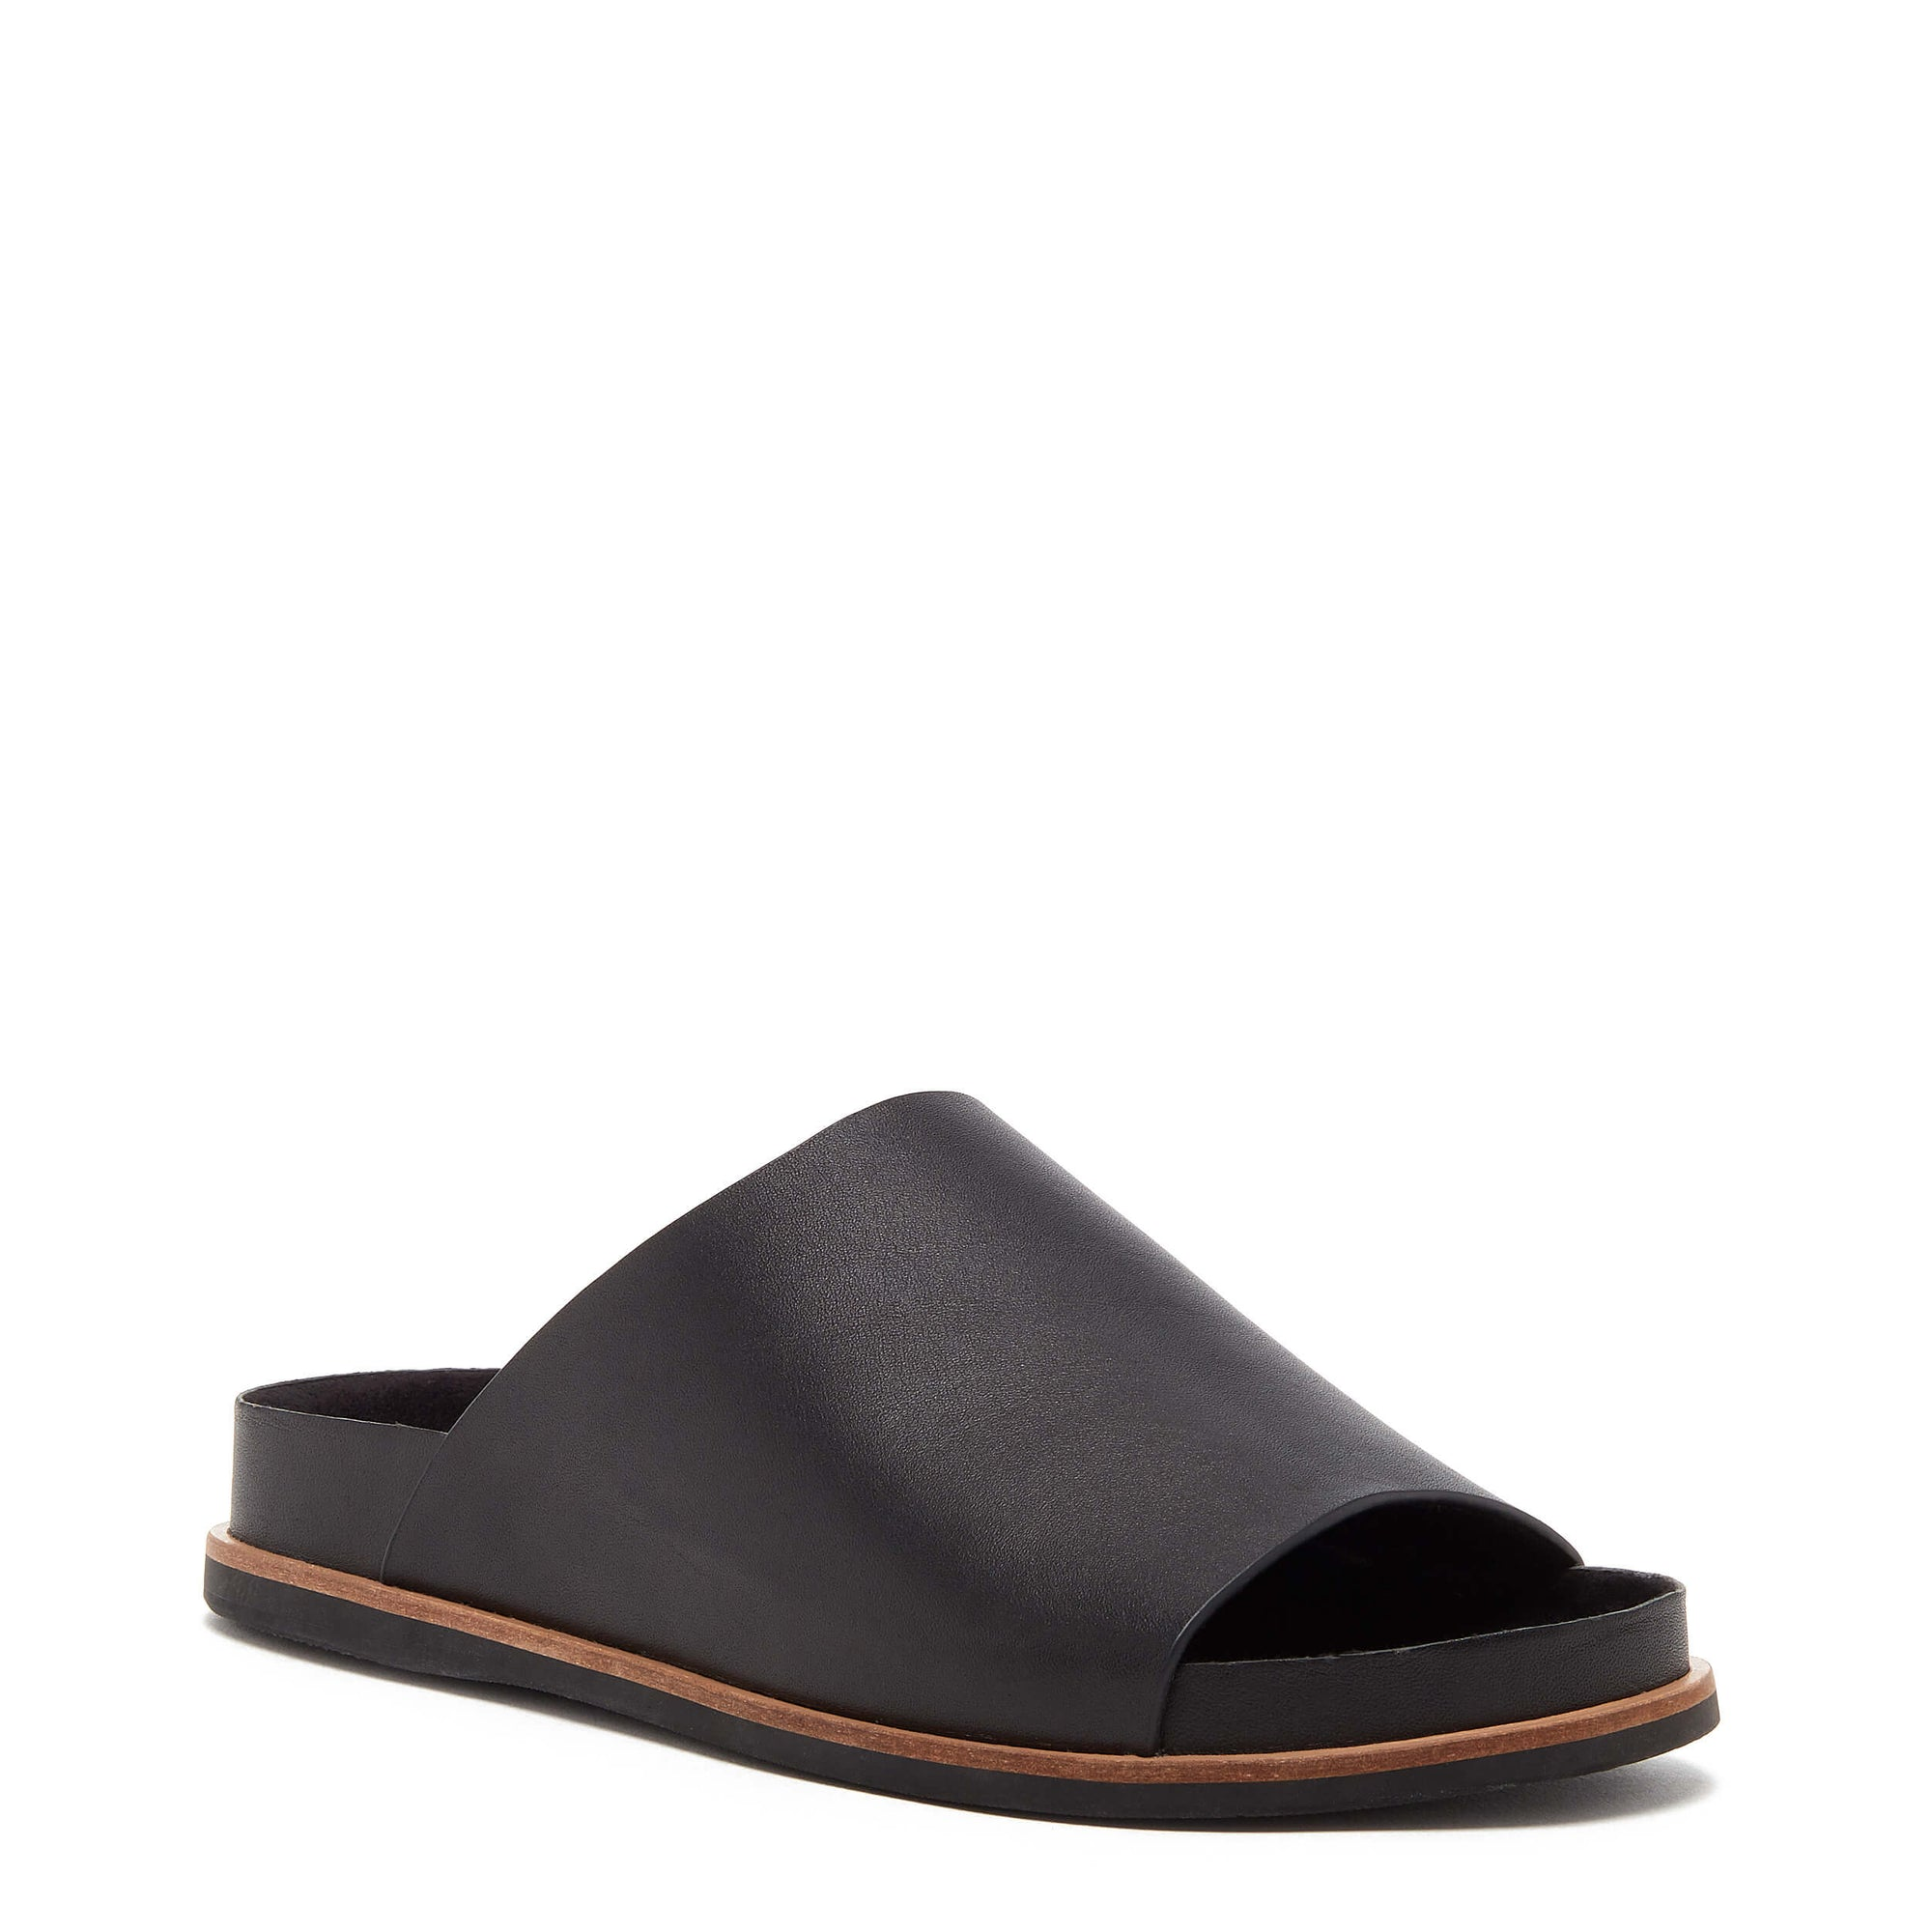 Kelsi Dagger BK® Squish Black Soft Footbed Sandal